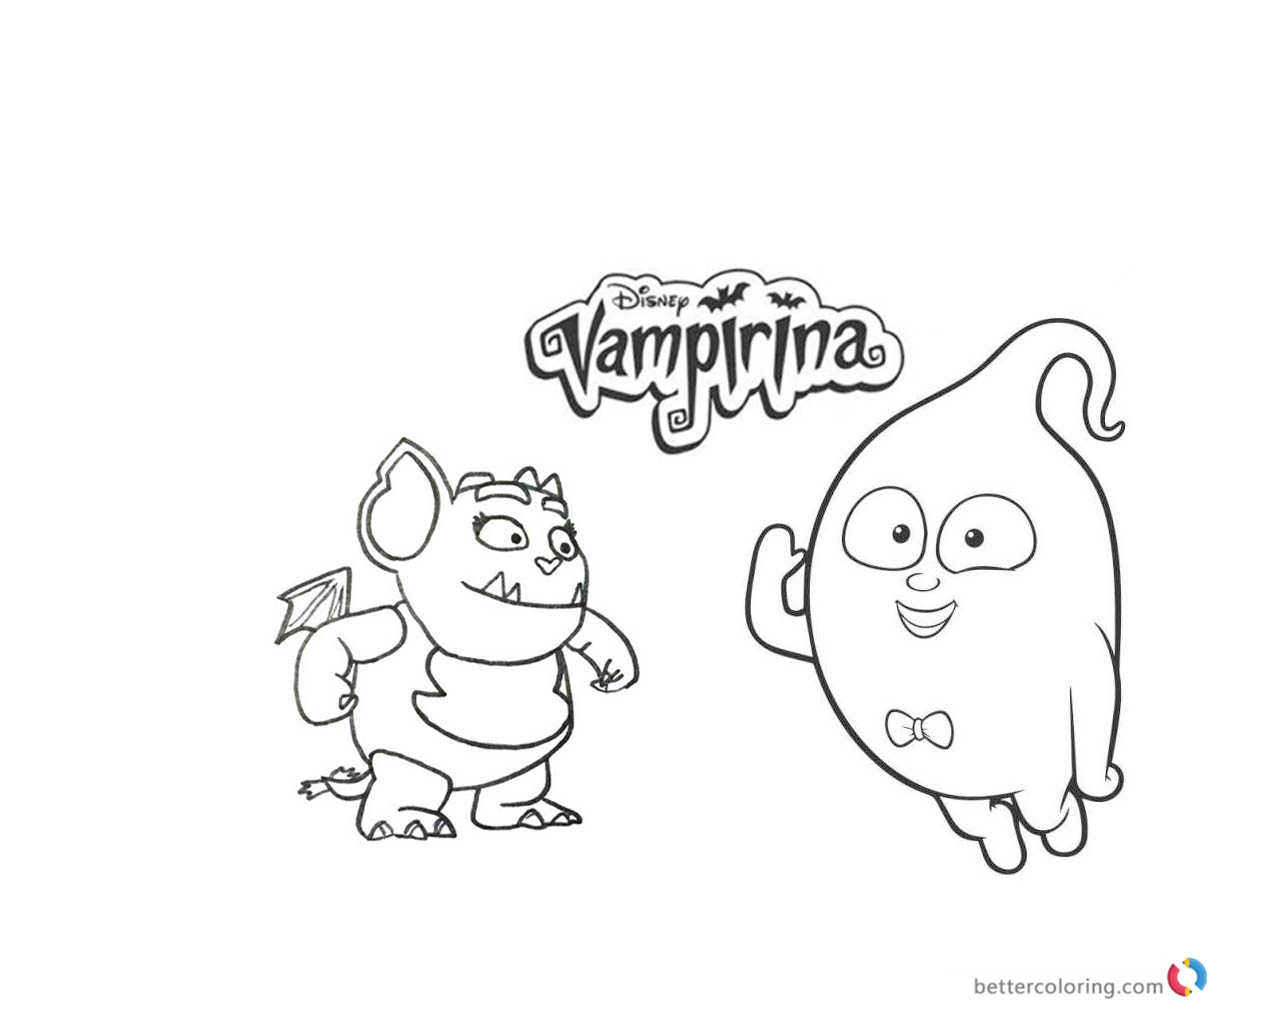 V Irina Coloring Page Black And White Free Printable Coloring